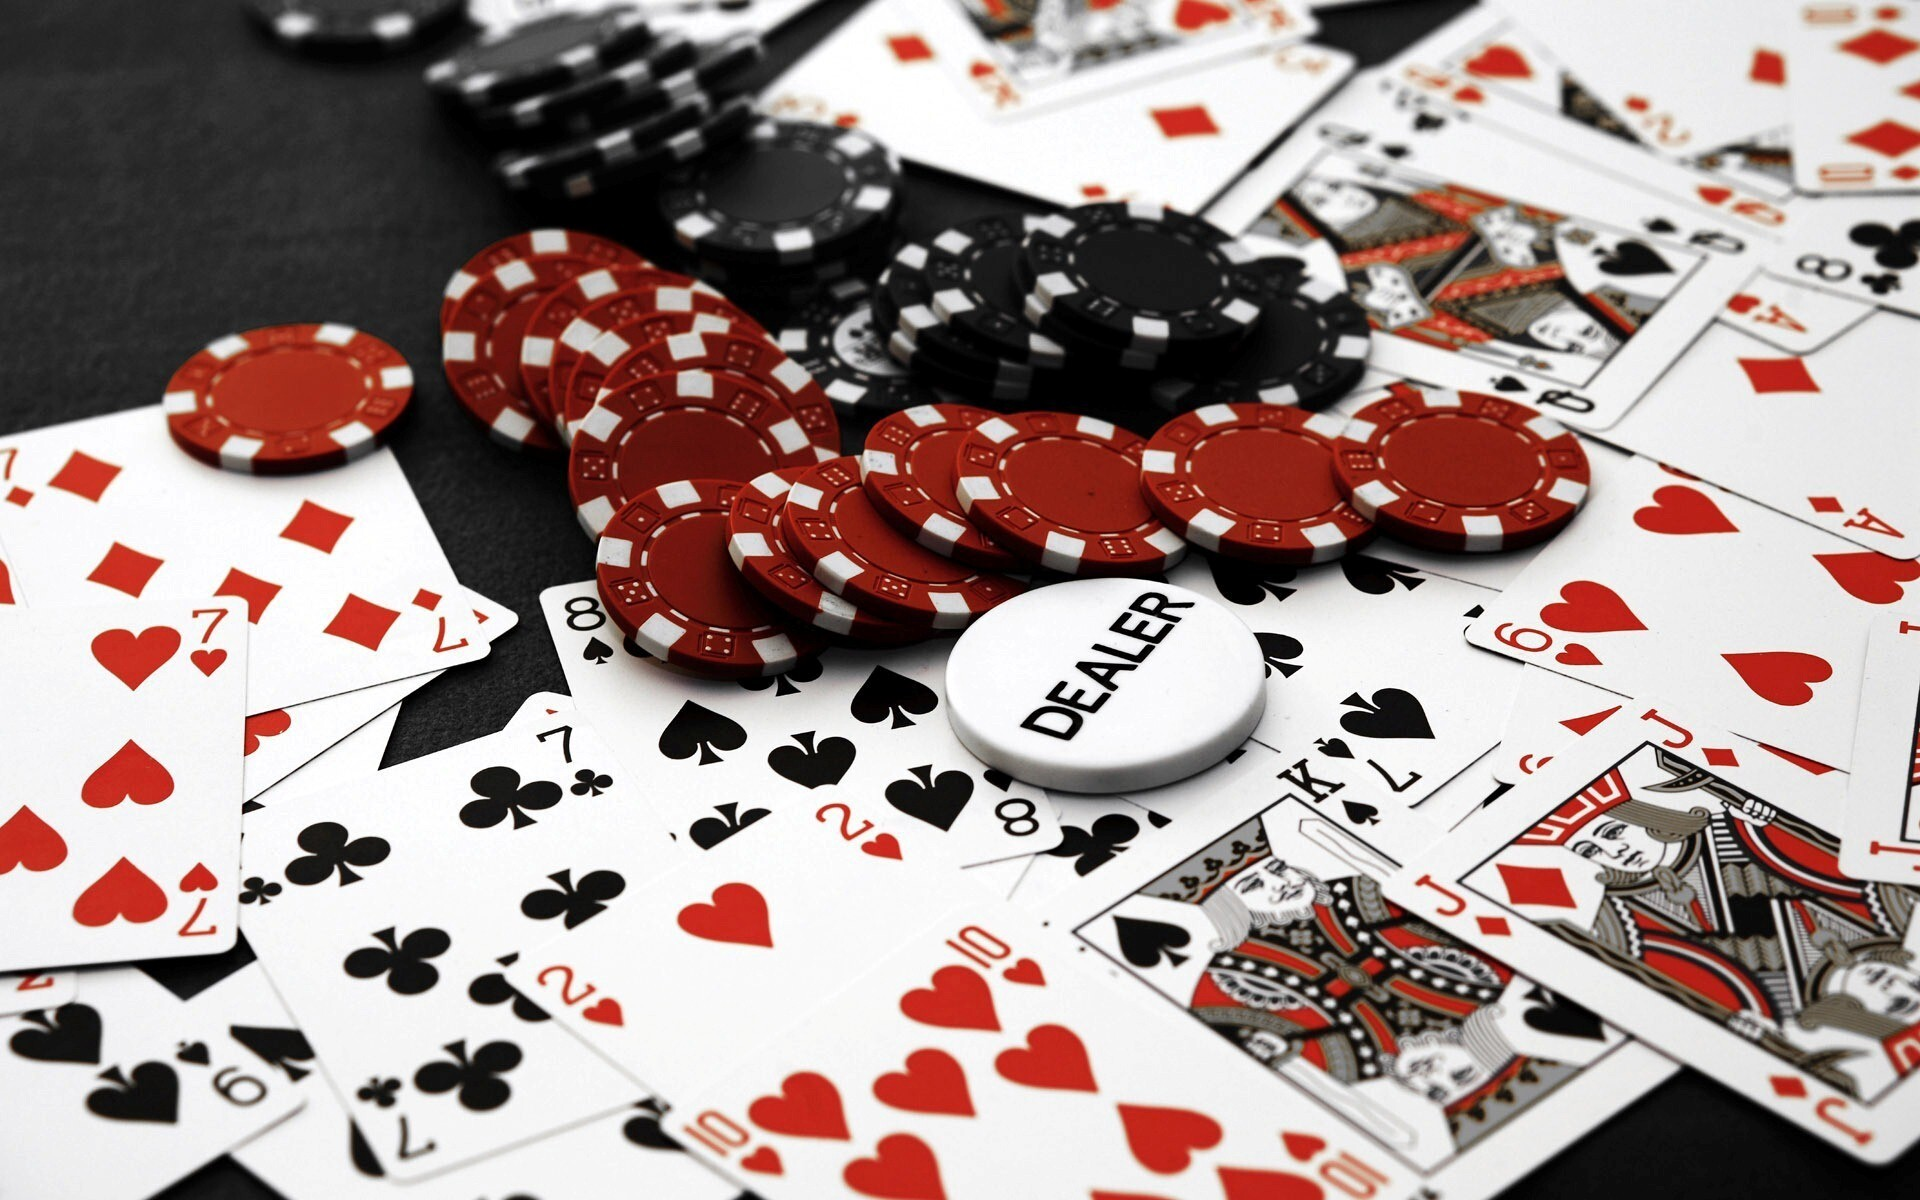 Free online poker casinos online casino & online poker room - 888.com